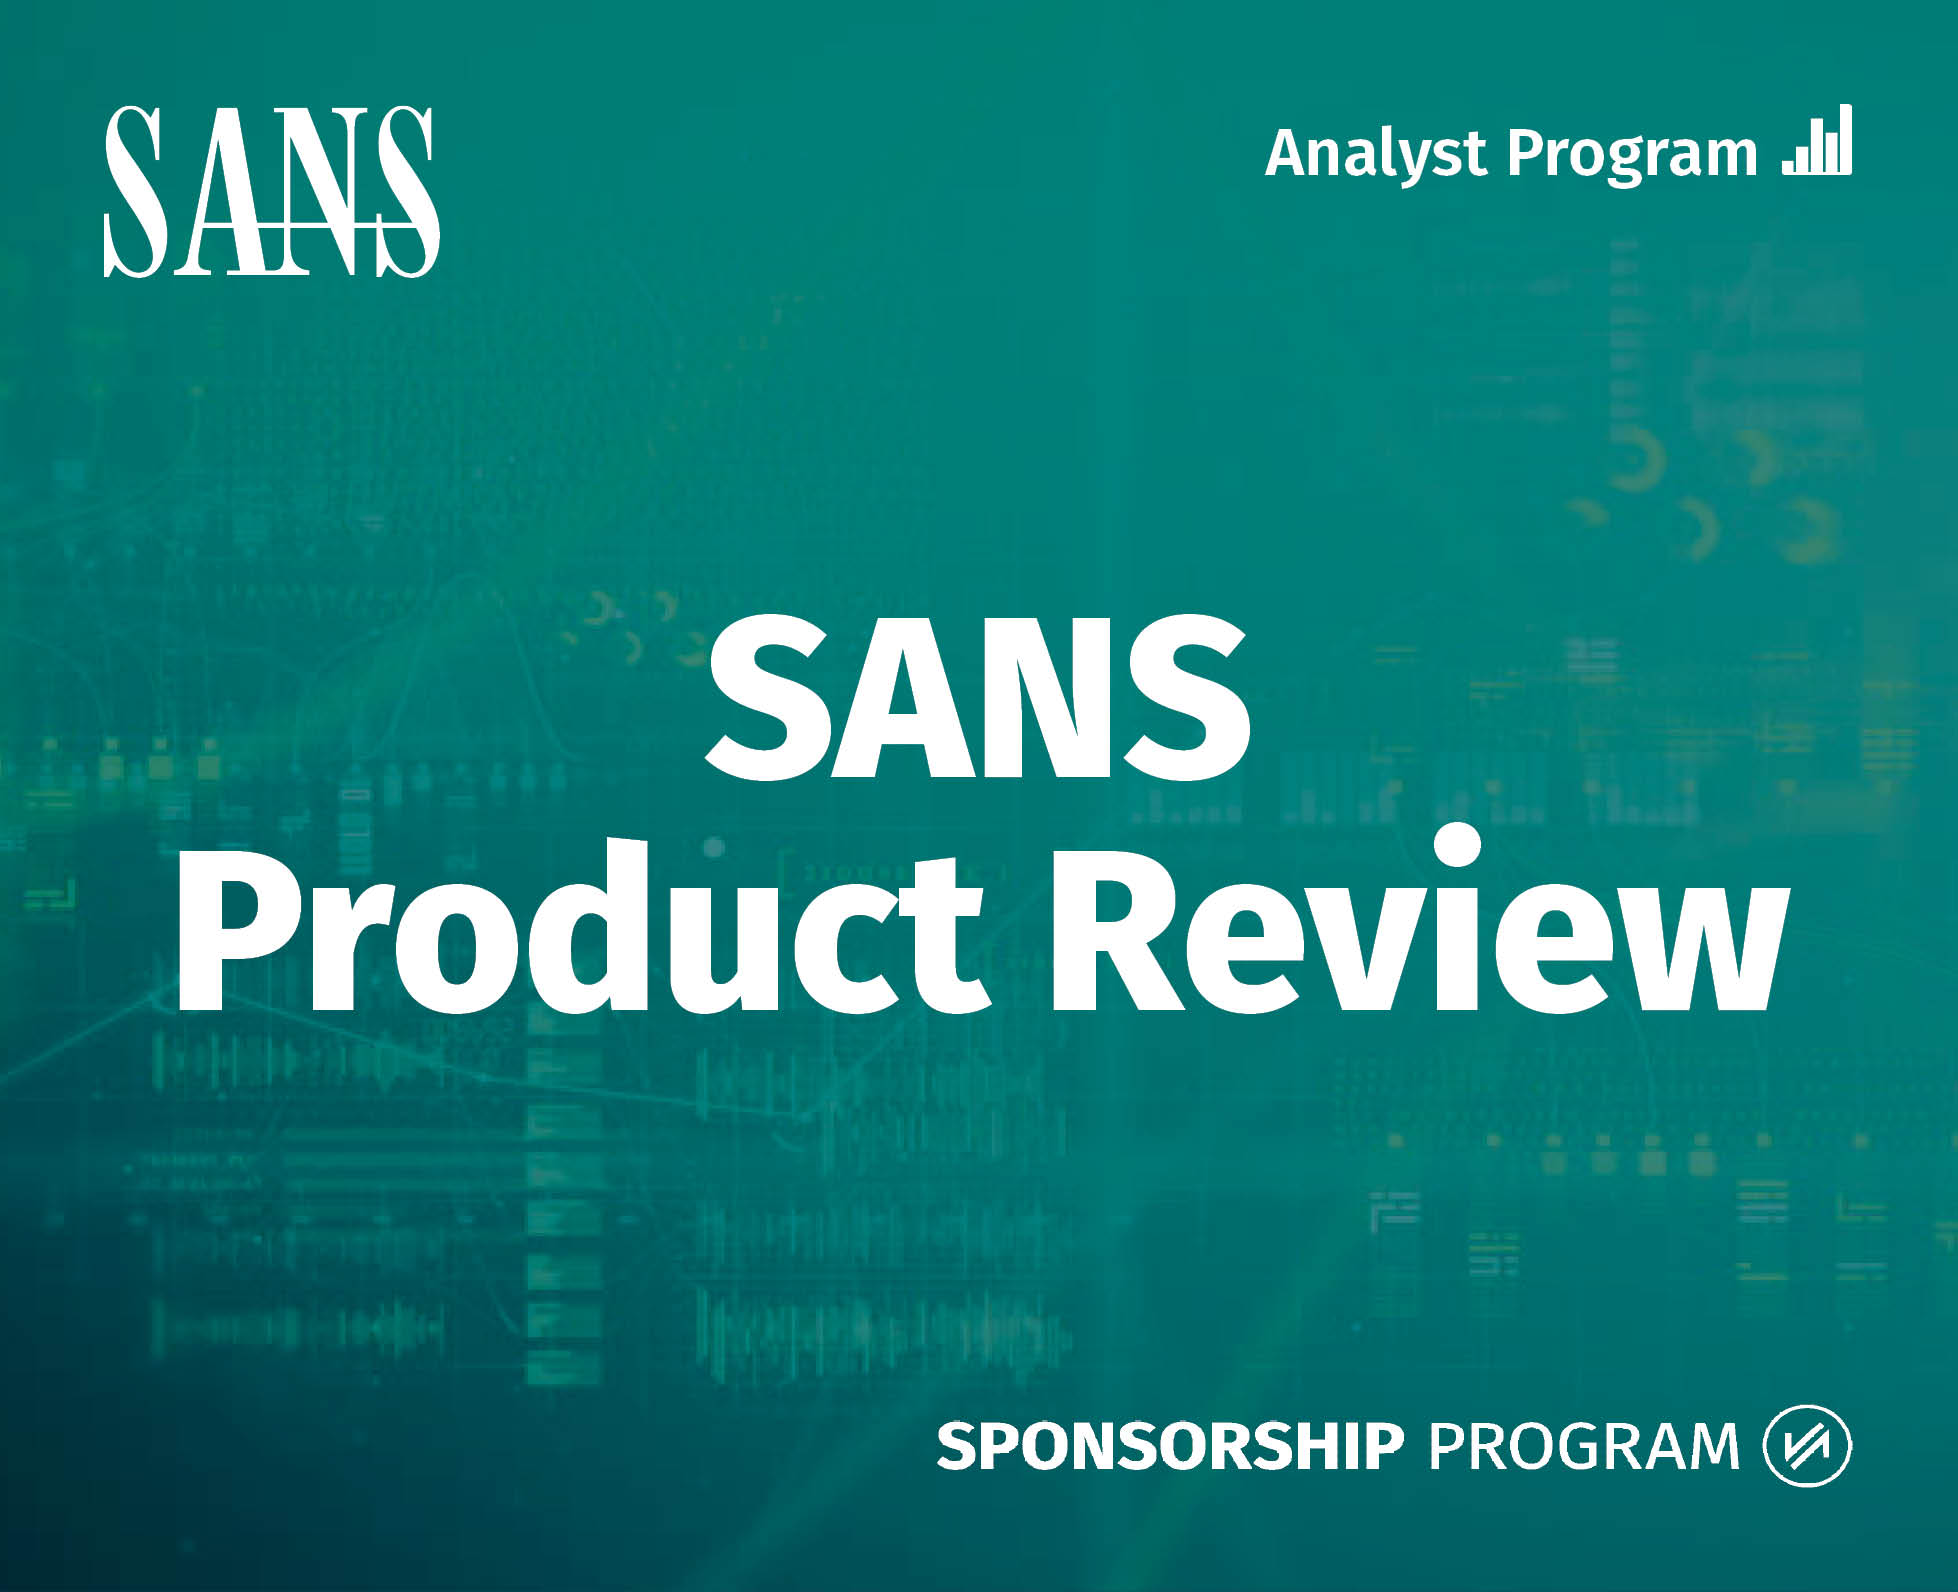 Analyst_Program_-_Product_Review.jpg